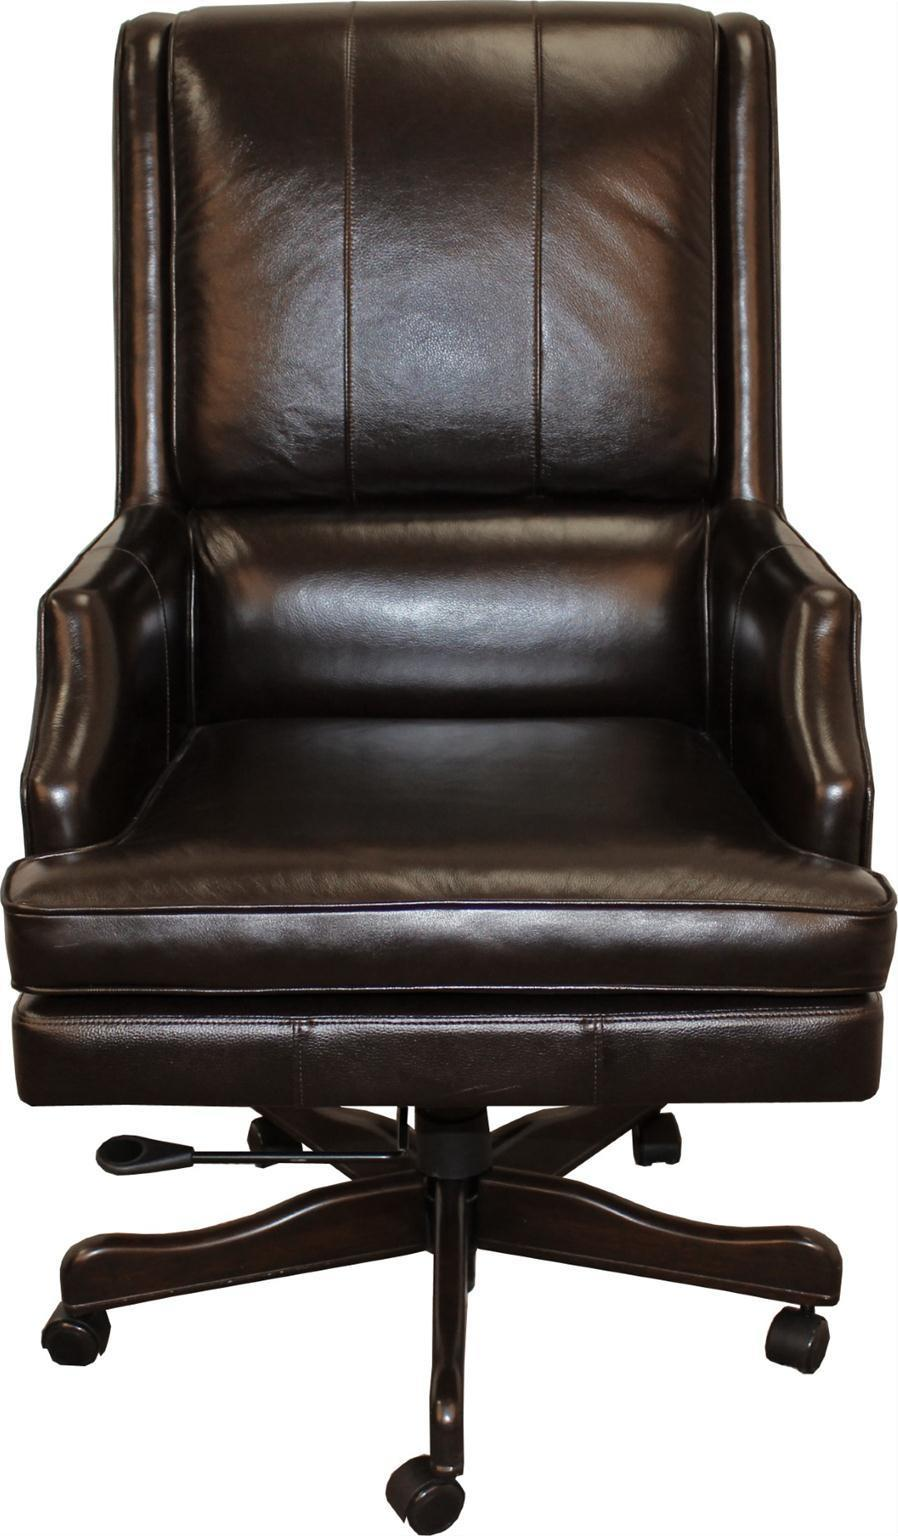 Easton Leather Desk Chair by Parker House at Morris Home